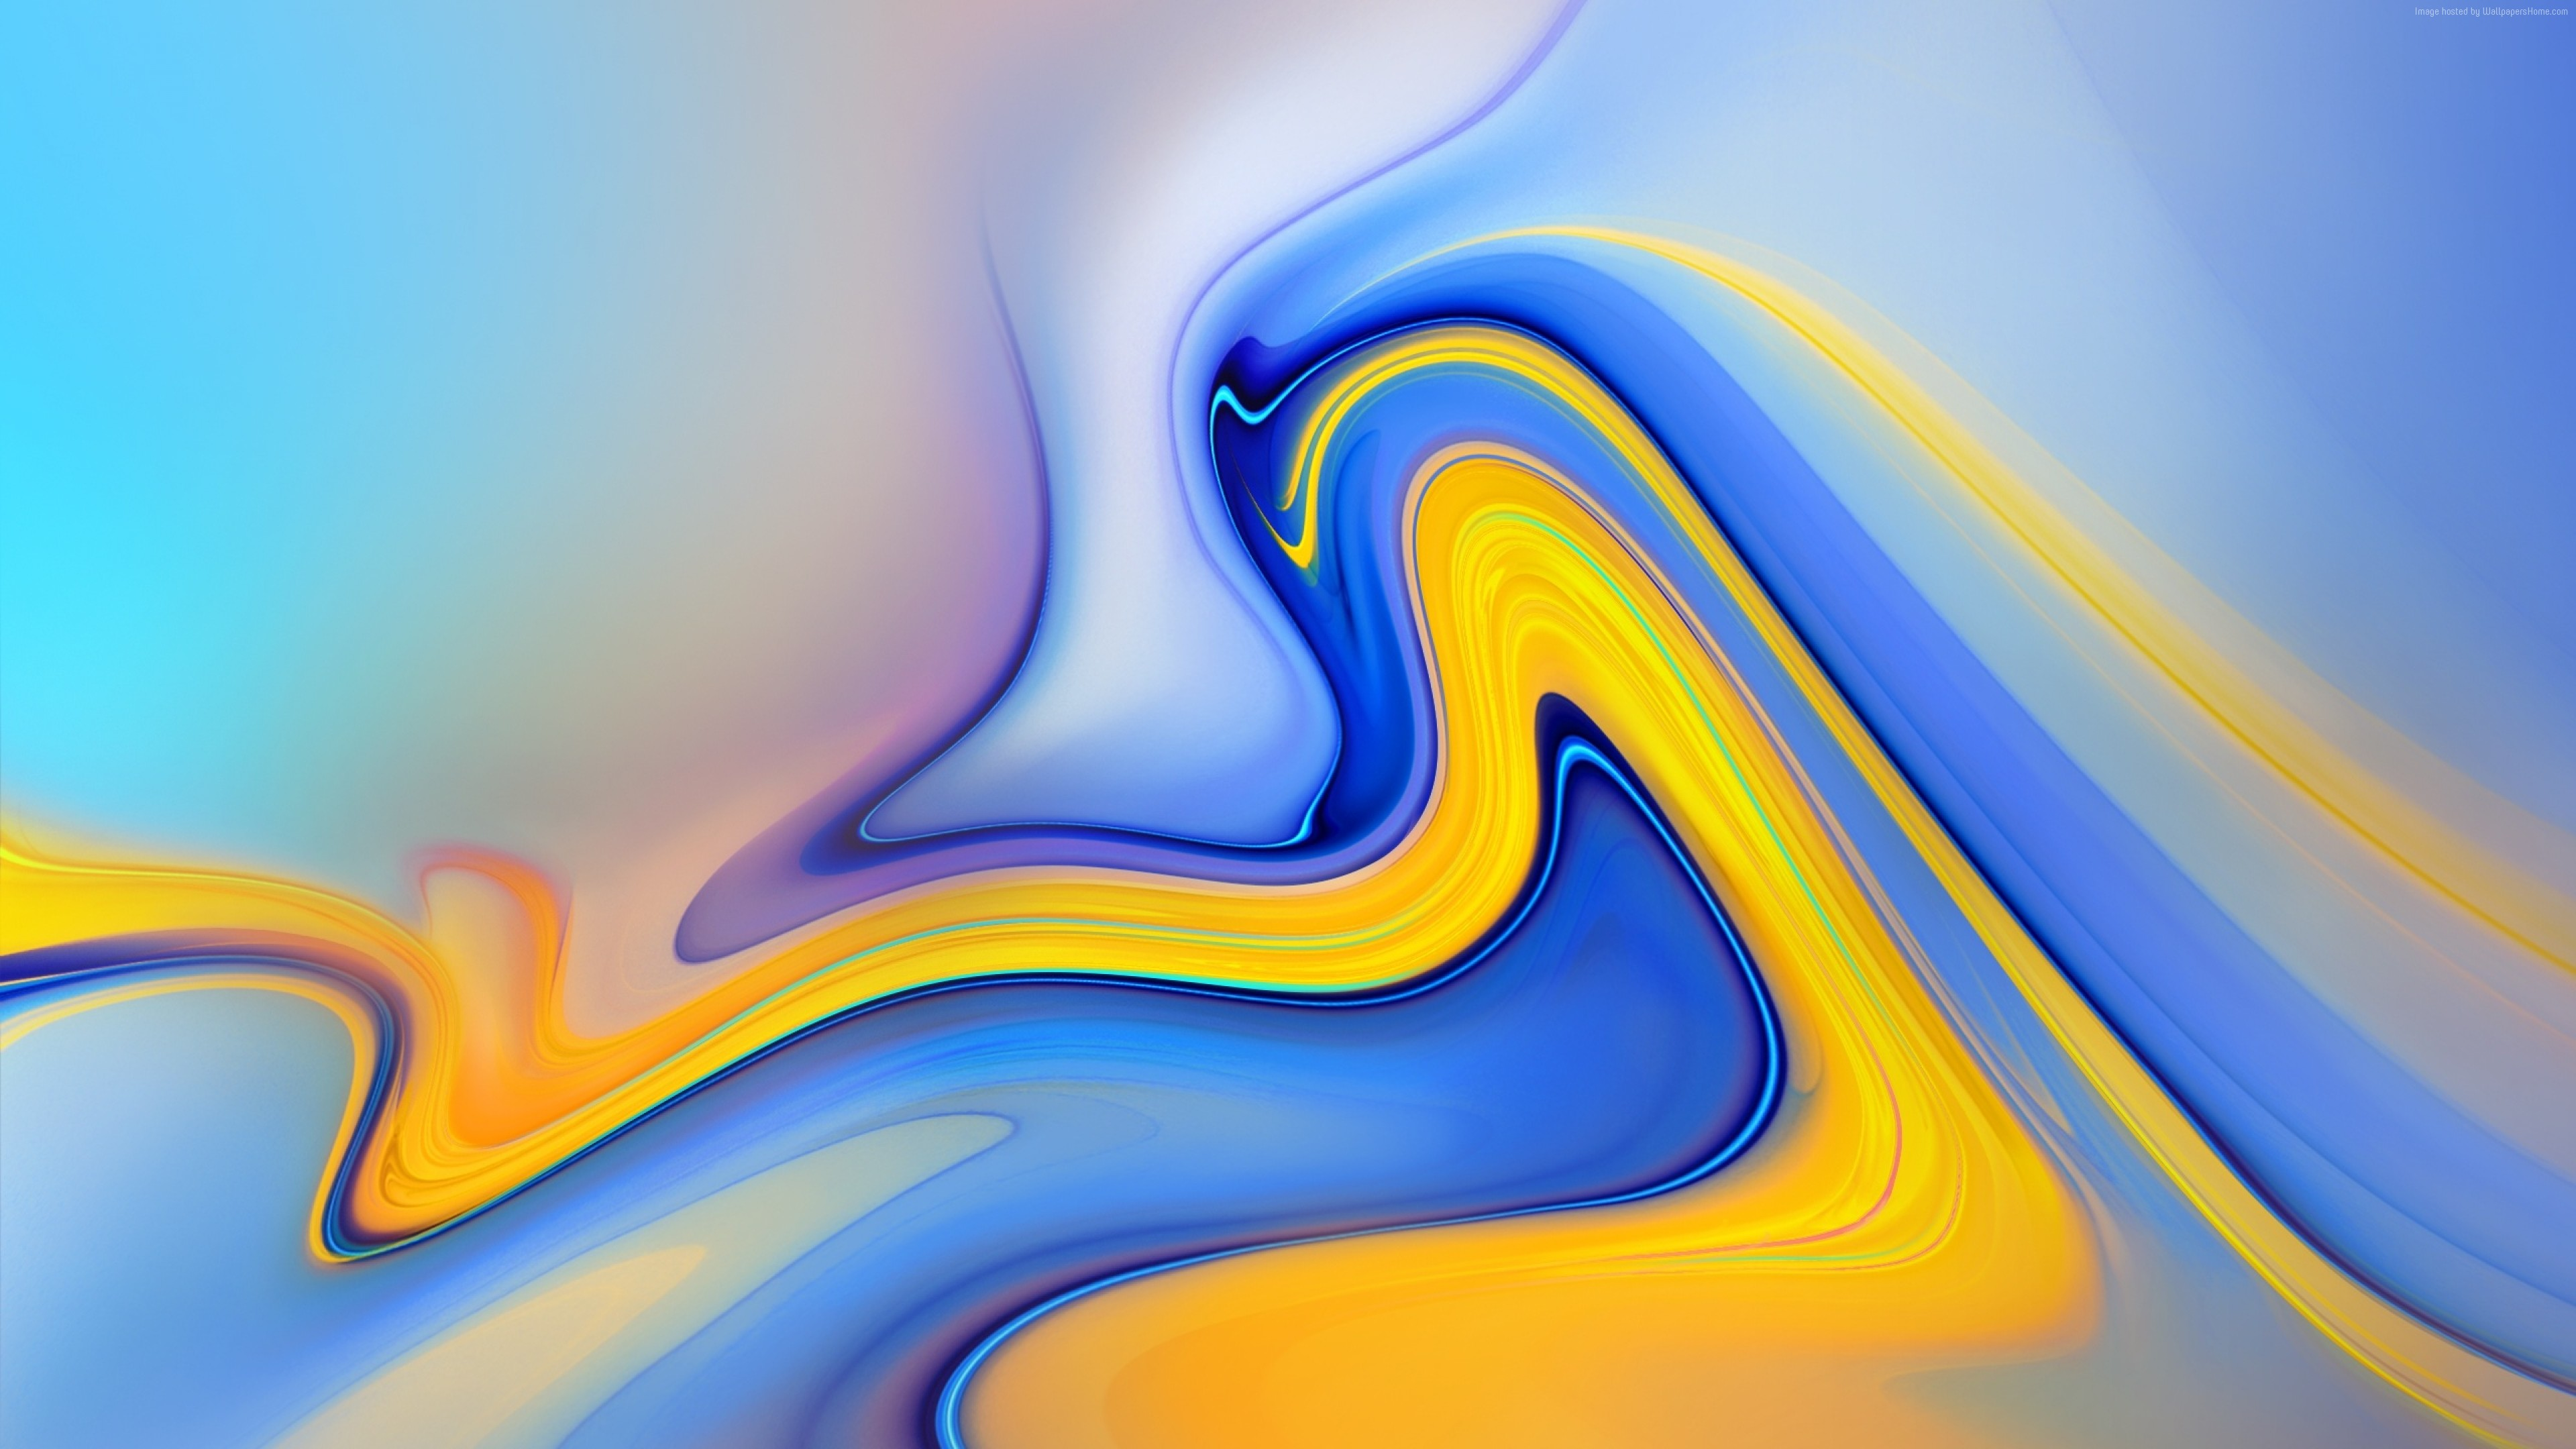 Wallpaper Samsung Galaxy Note 9, Android 8.0, Android Oreo, abstract, colorful, OS